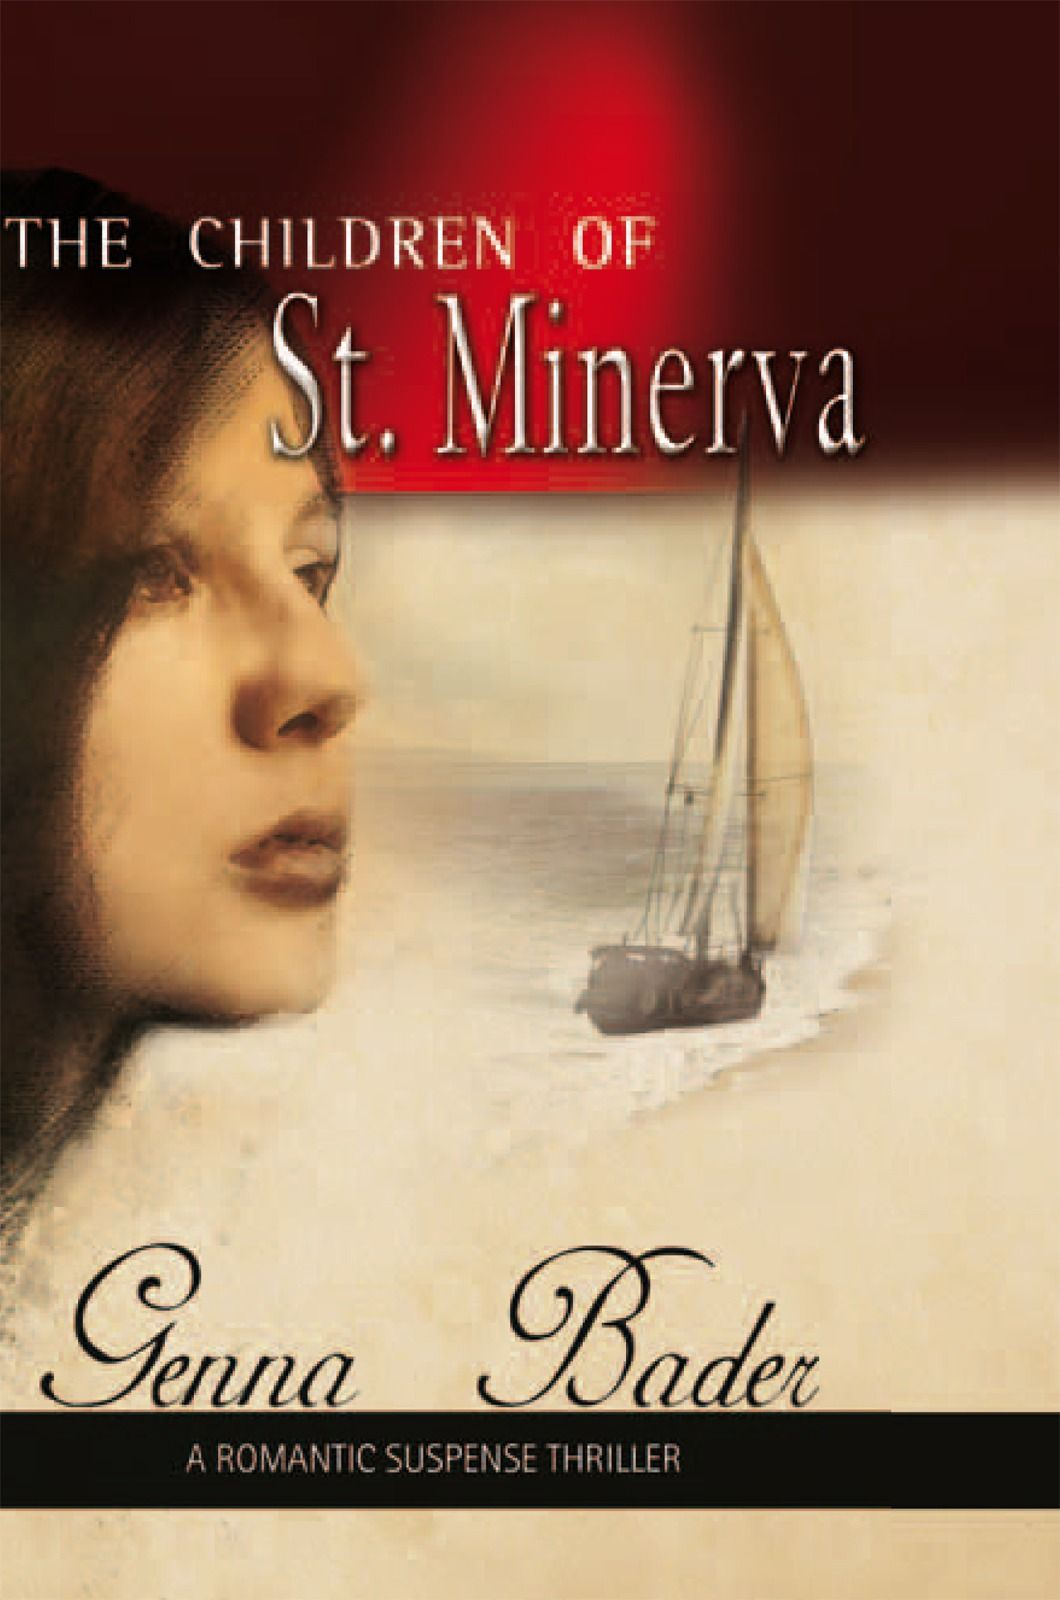 The Children of St. Minerva